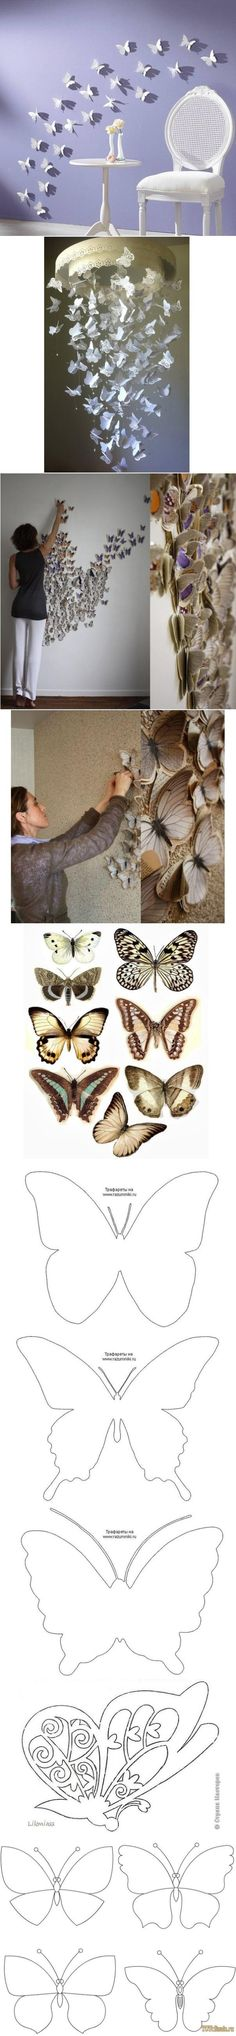 DIY Patroon Butterfly Wall Decor DIY vlinder patroon Decor van de Muur door diyforever